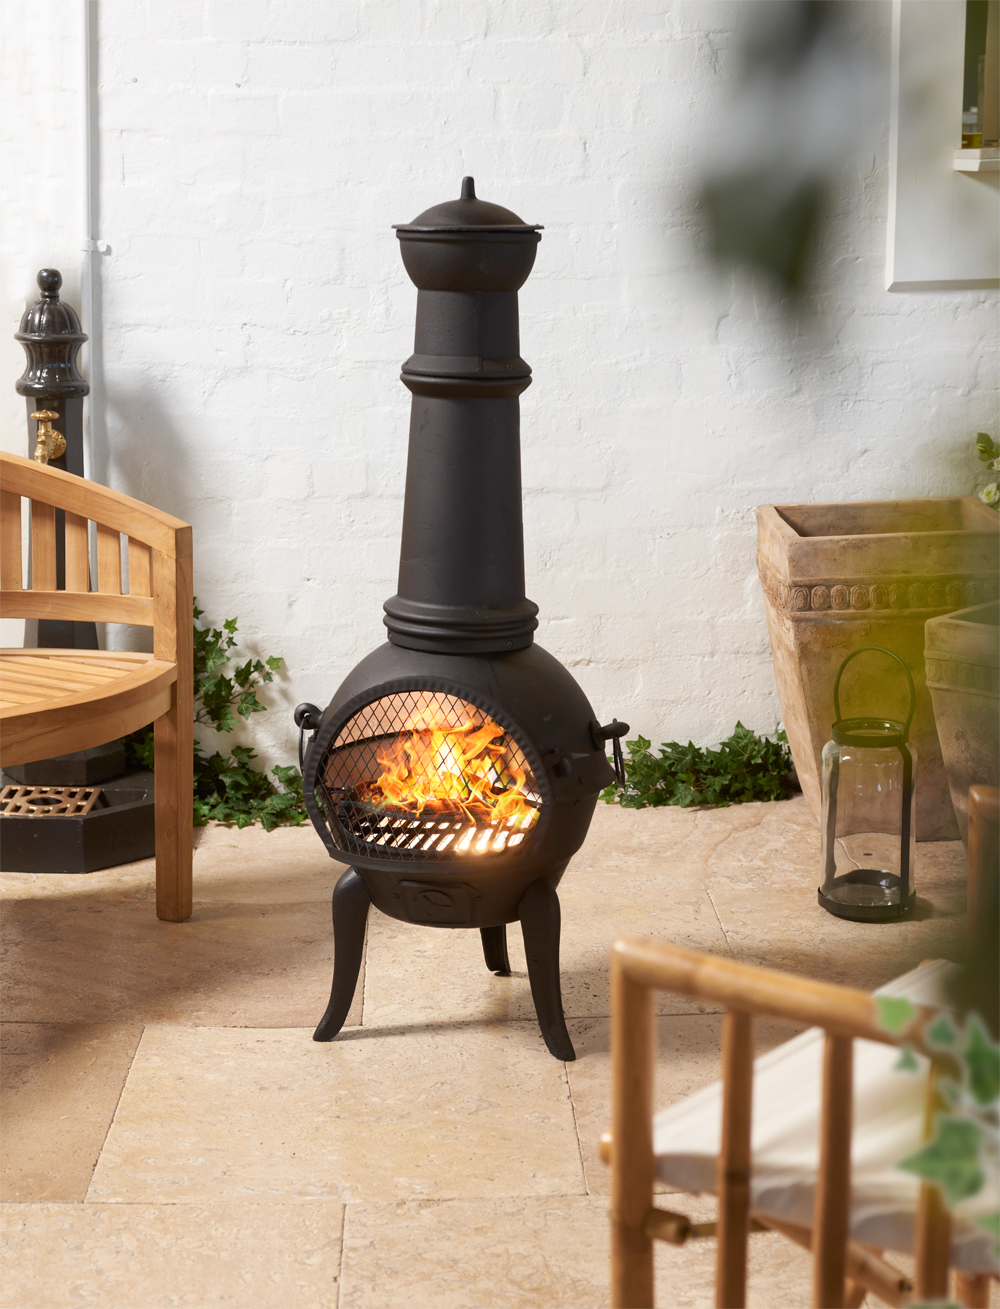 Turning up the heat: Inside this season's hottest fireplace products - chiminea outdoor entertaining fire